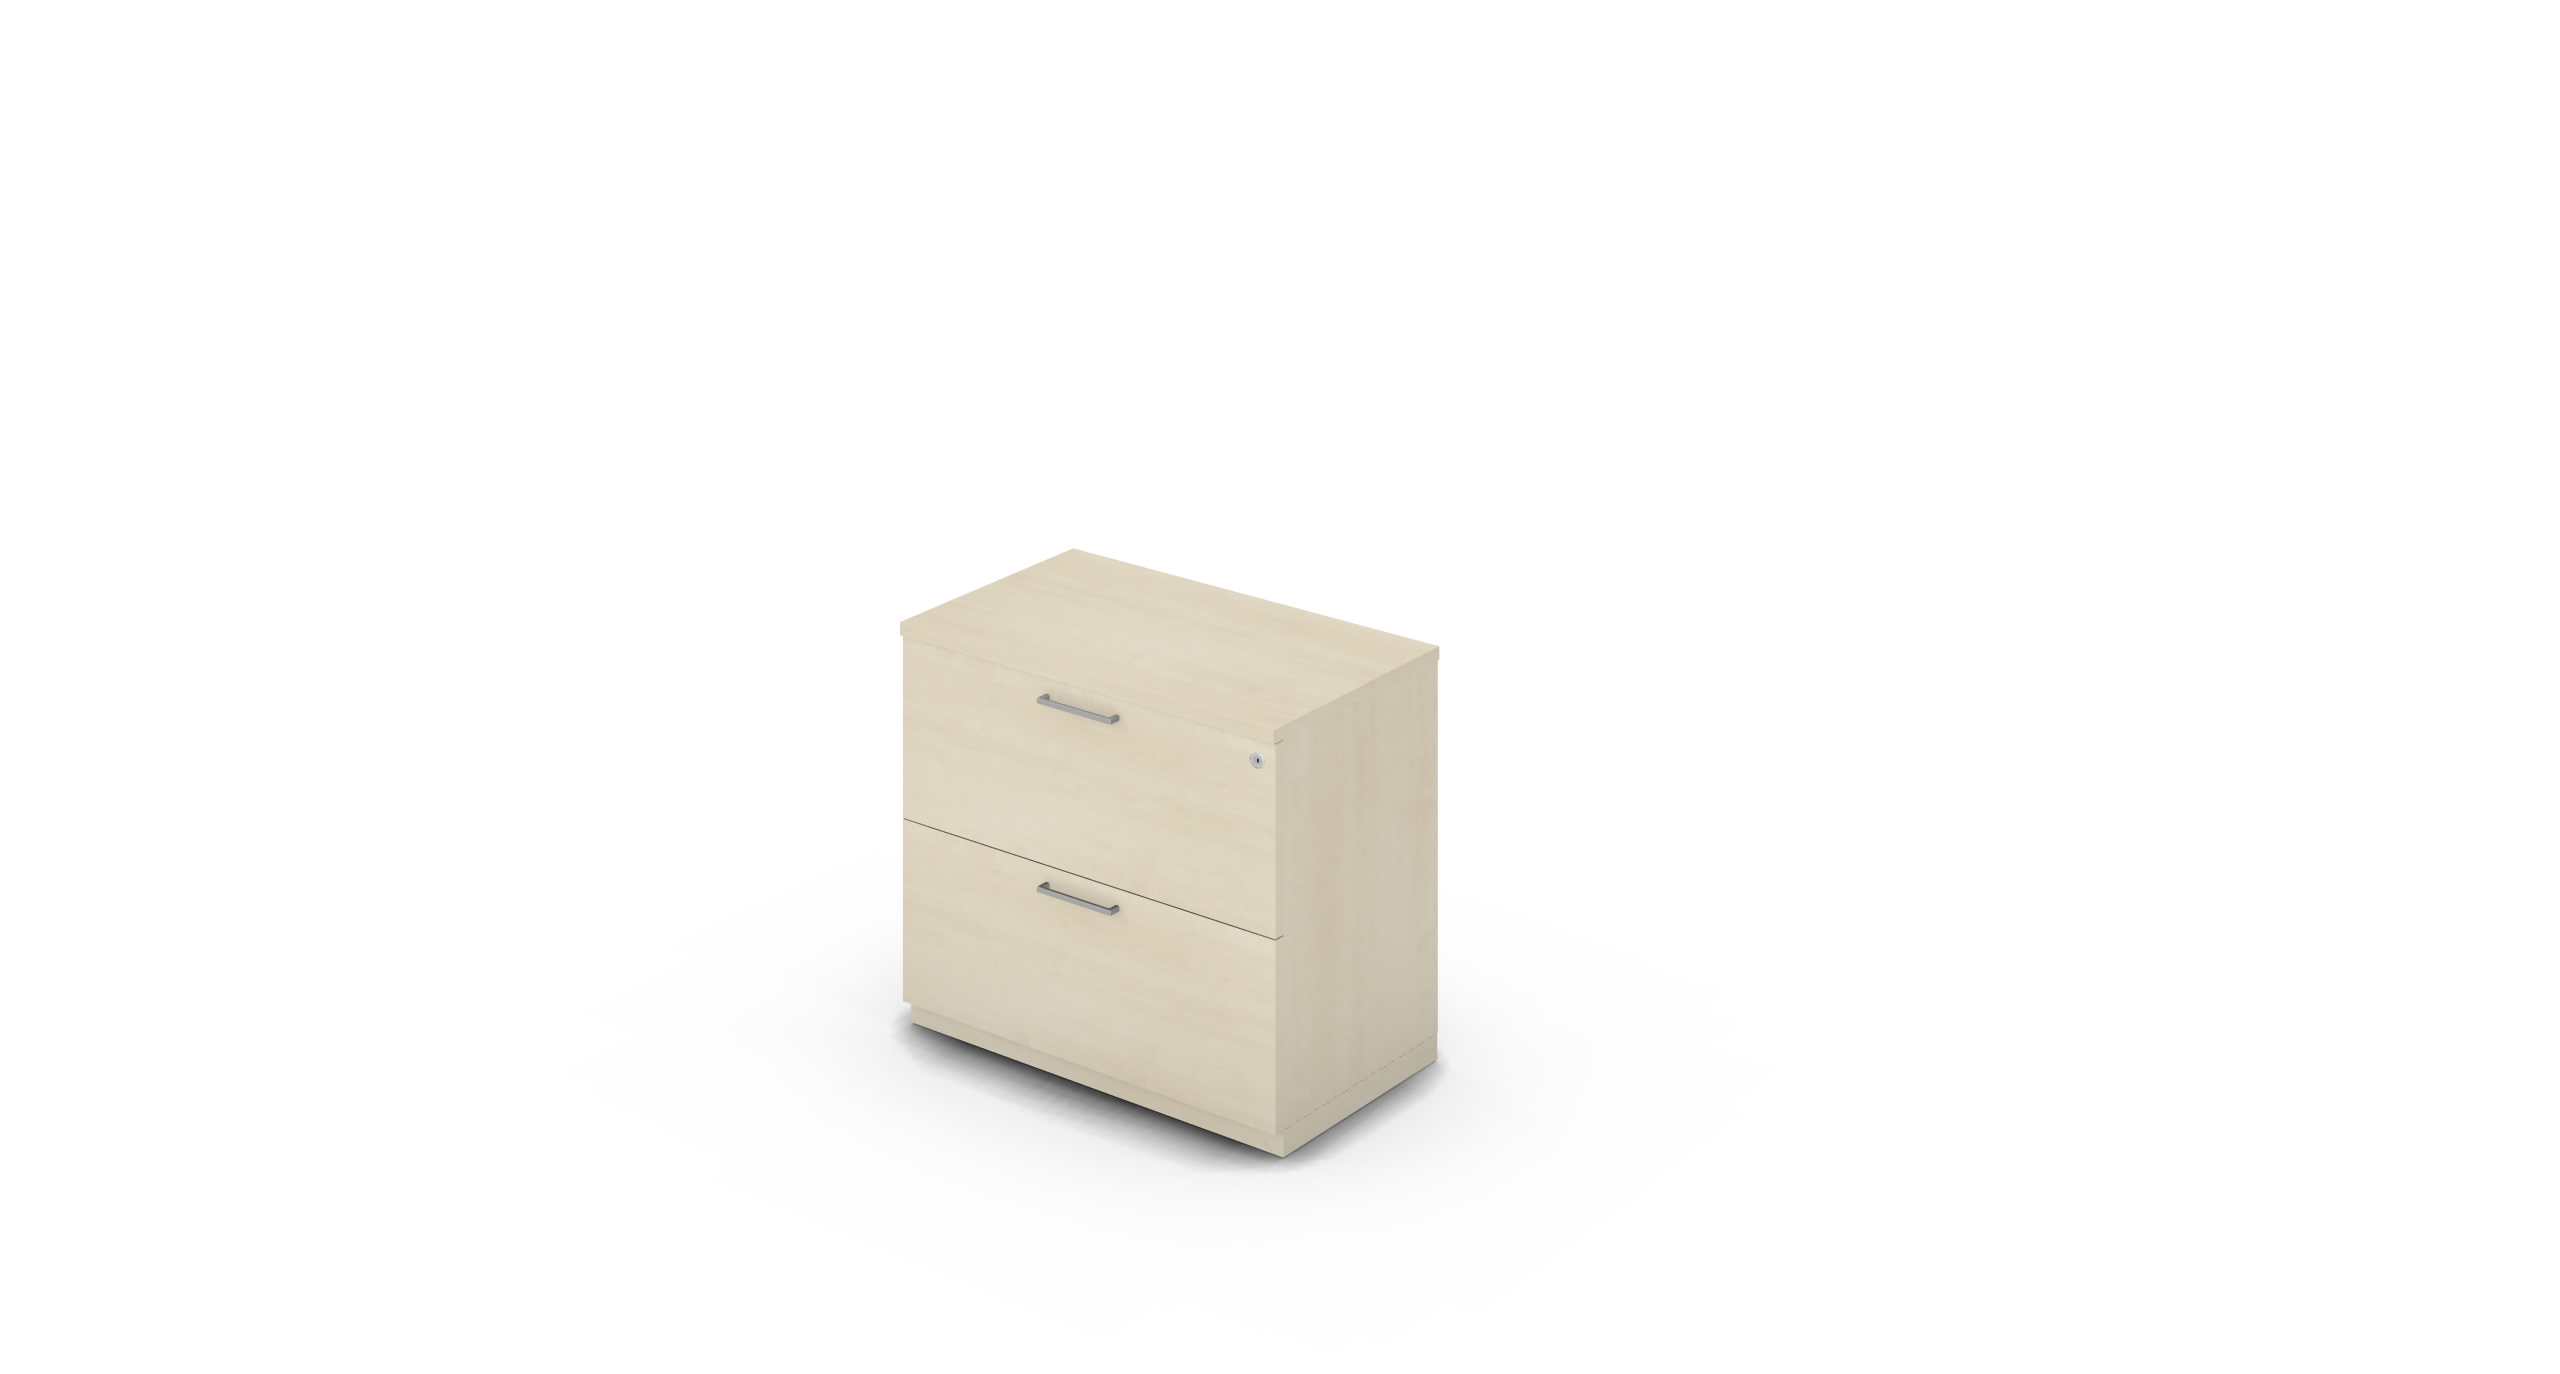 Cabinet_800x450x775_DR_Maple_Bar_Square_WithCylinder